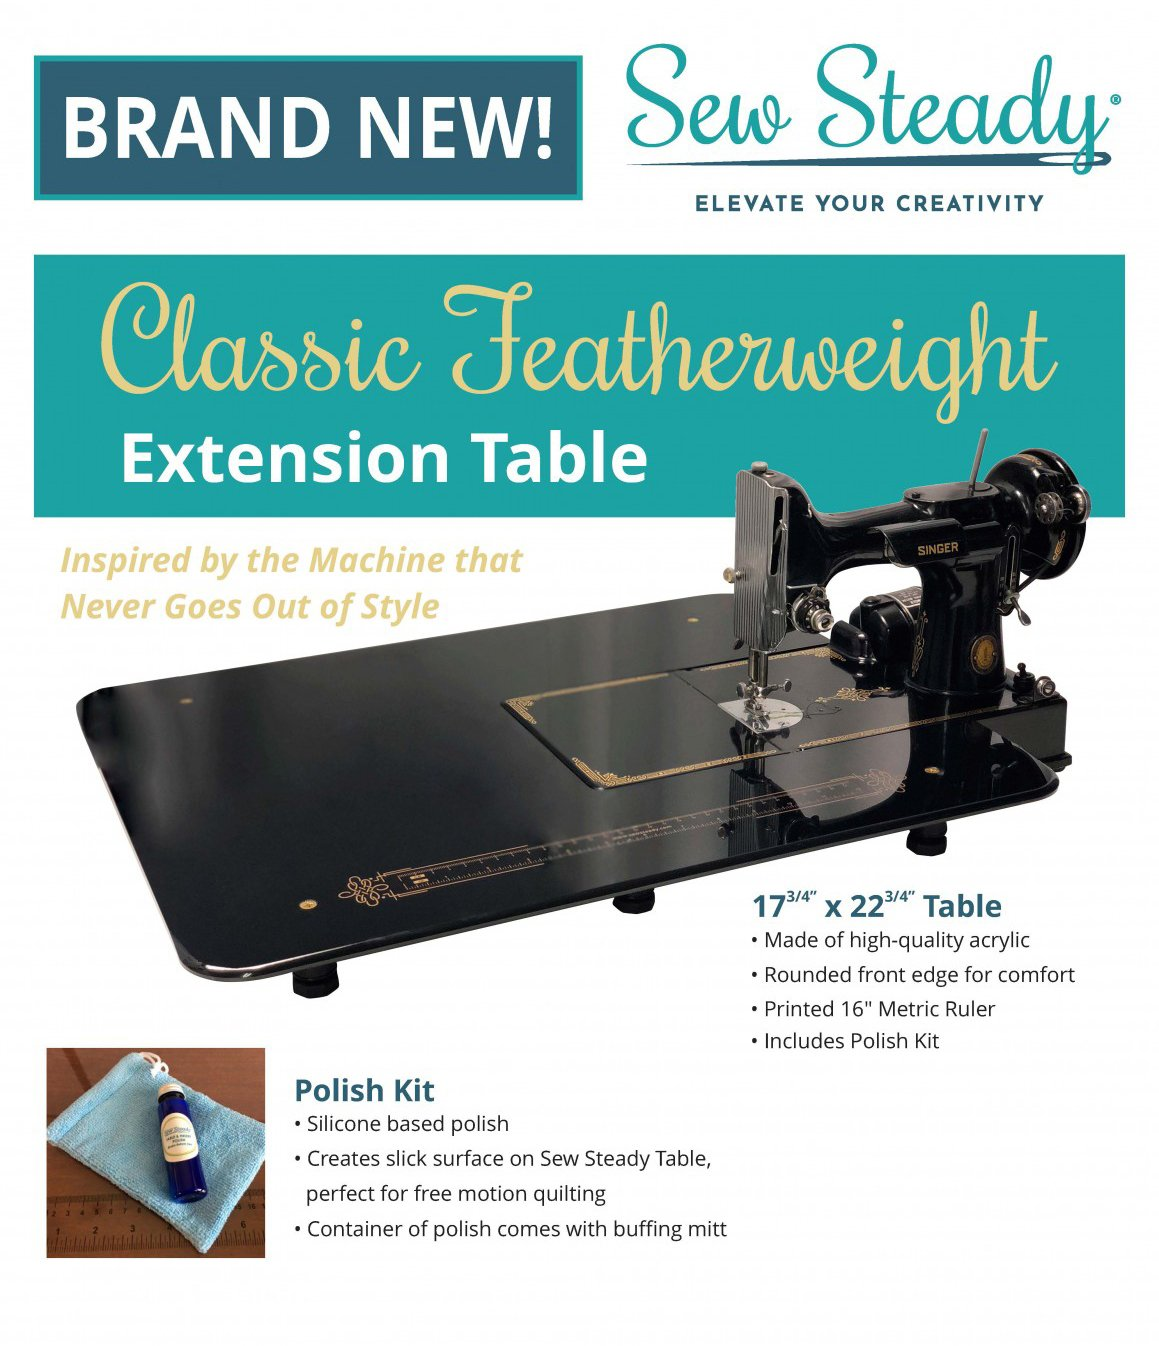 Sew Steady Classic Featherweight Extension Table